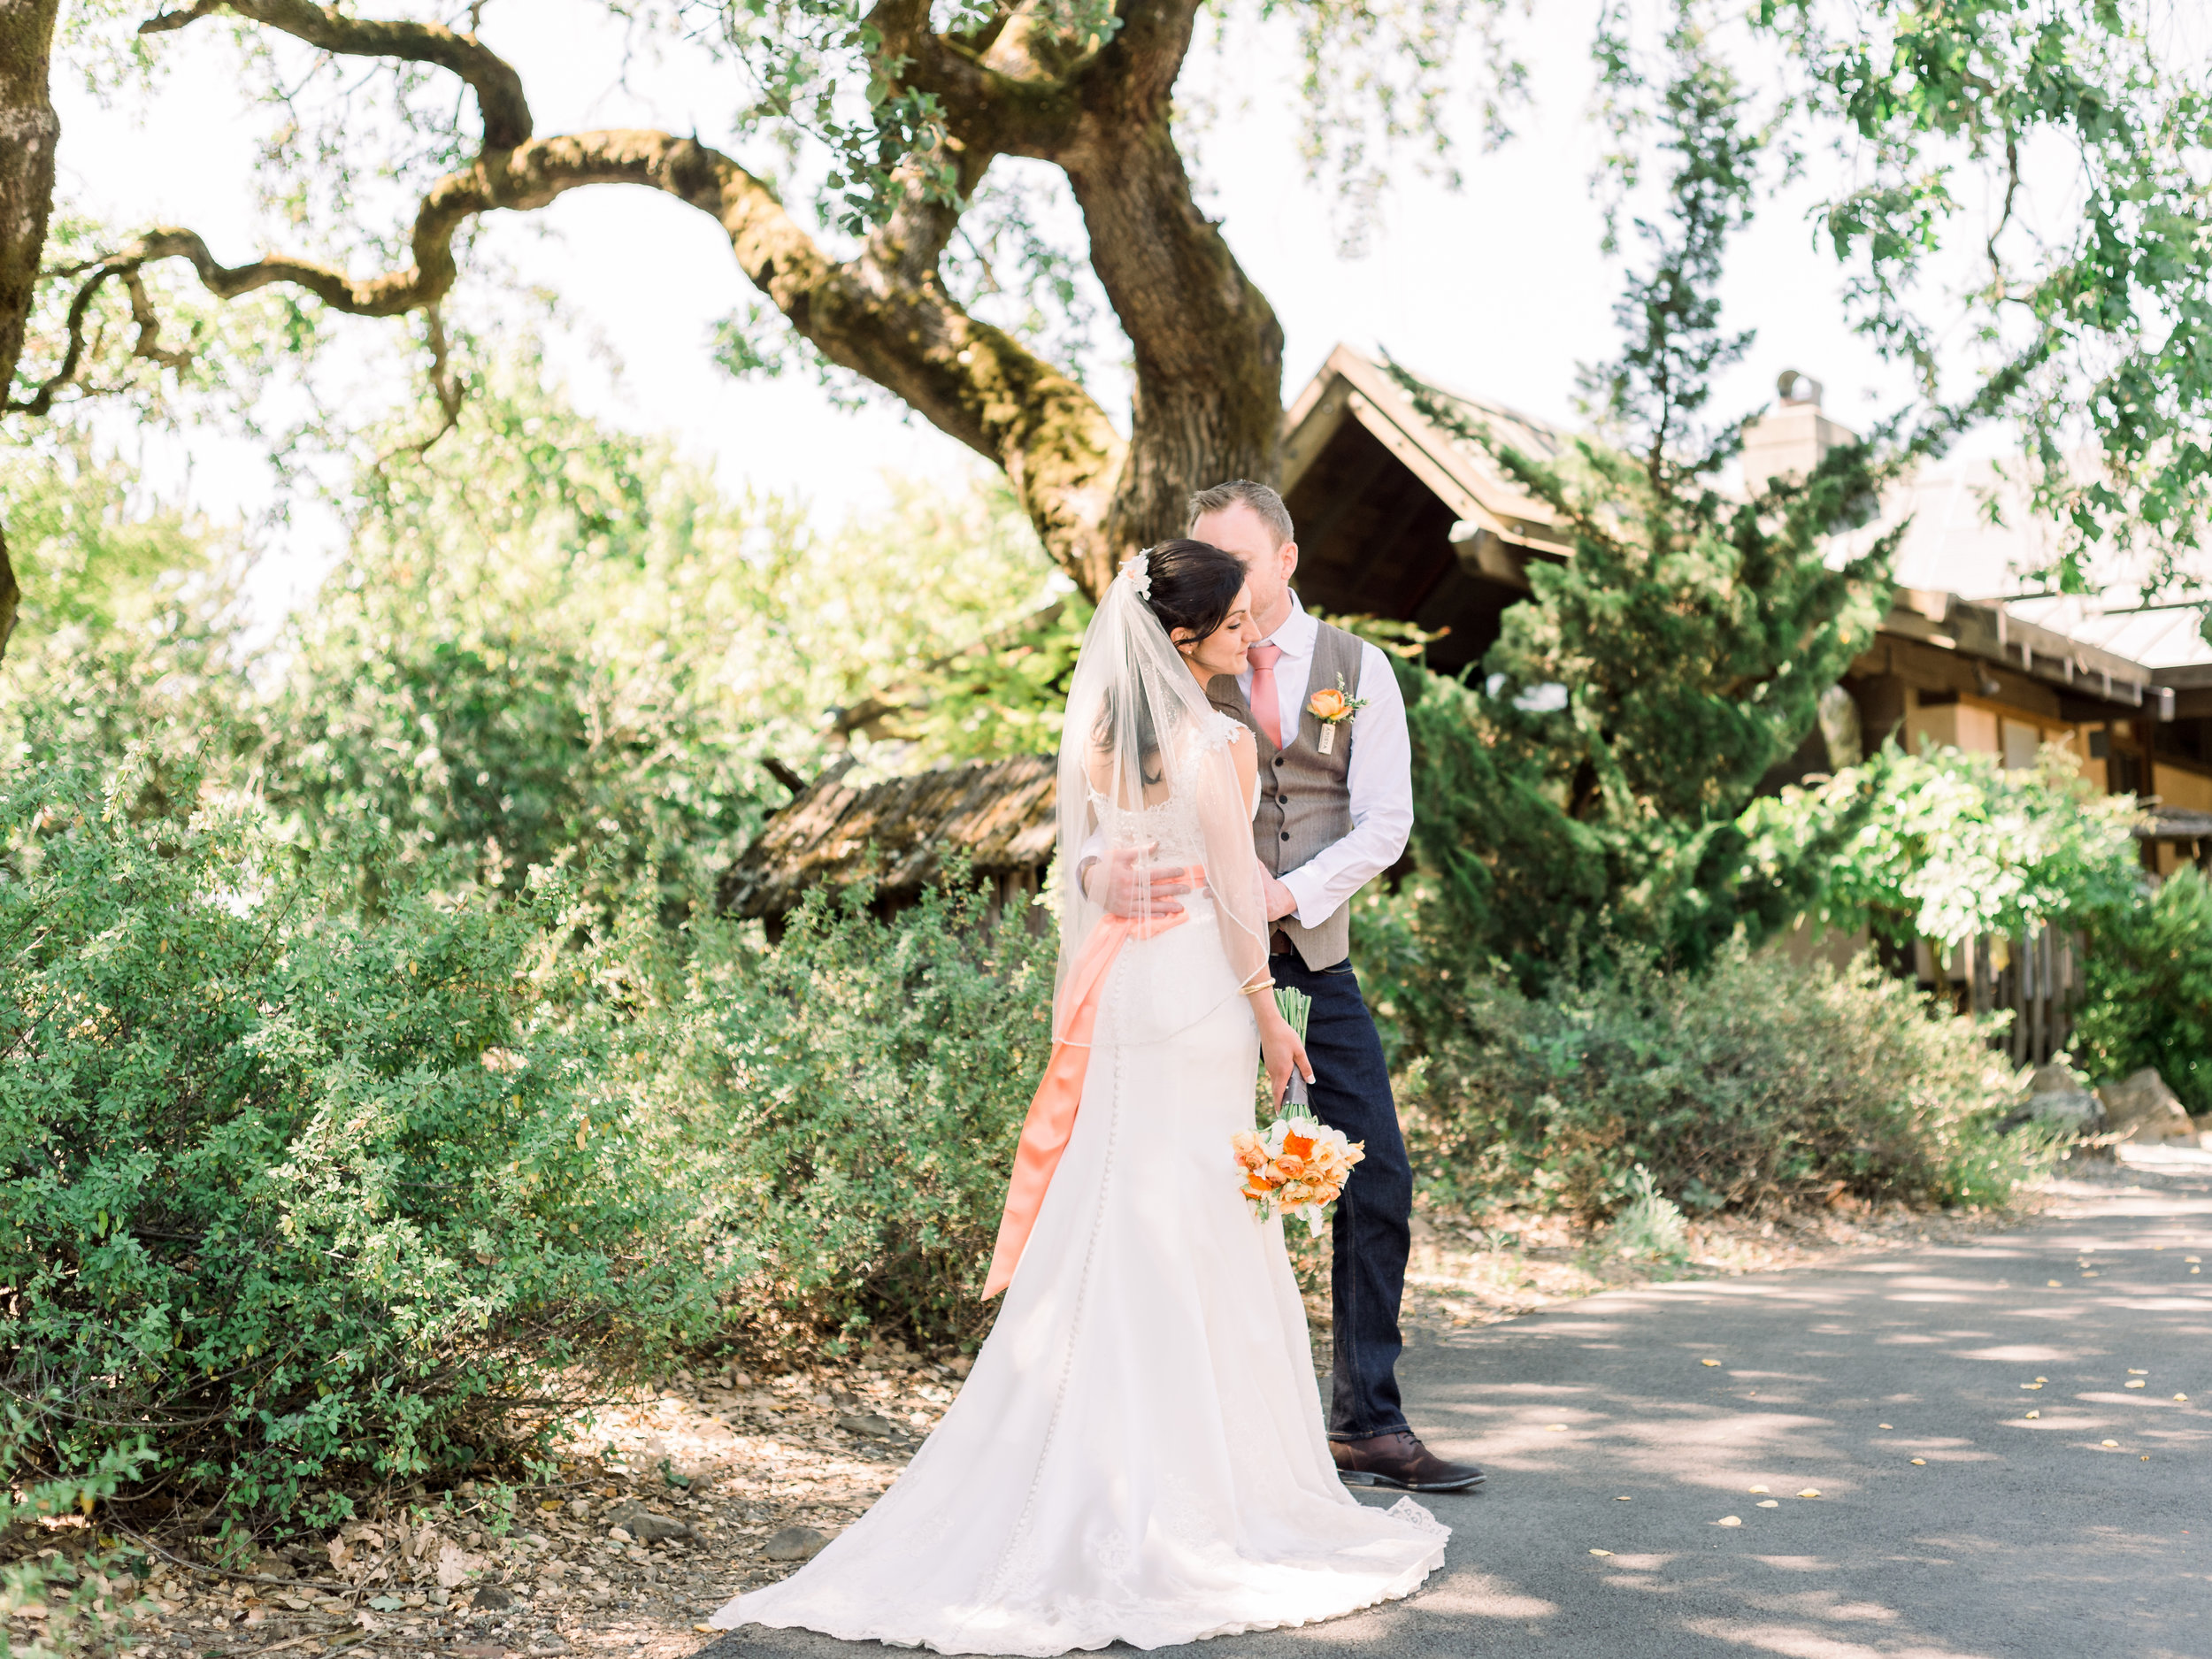 bride-and-groom-portrait-under-the-trees.jpg